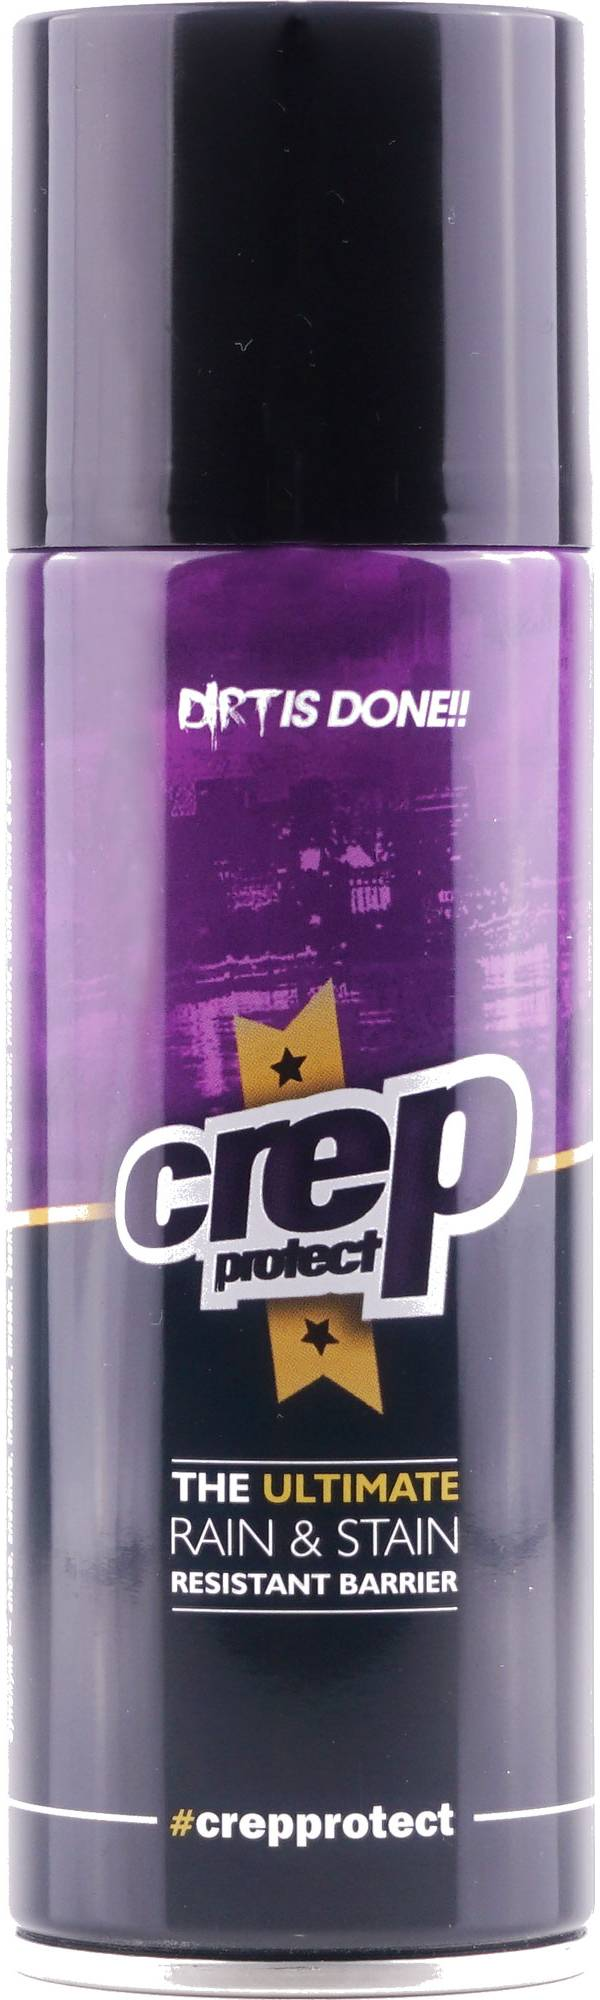 Crep Protect Rain and Stain Resistant Barrier Spray product image